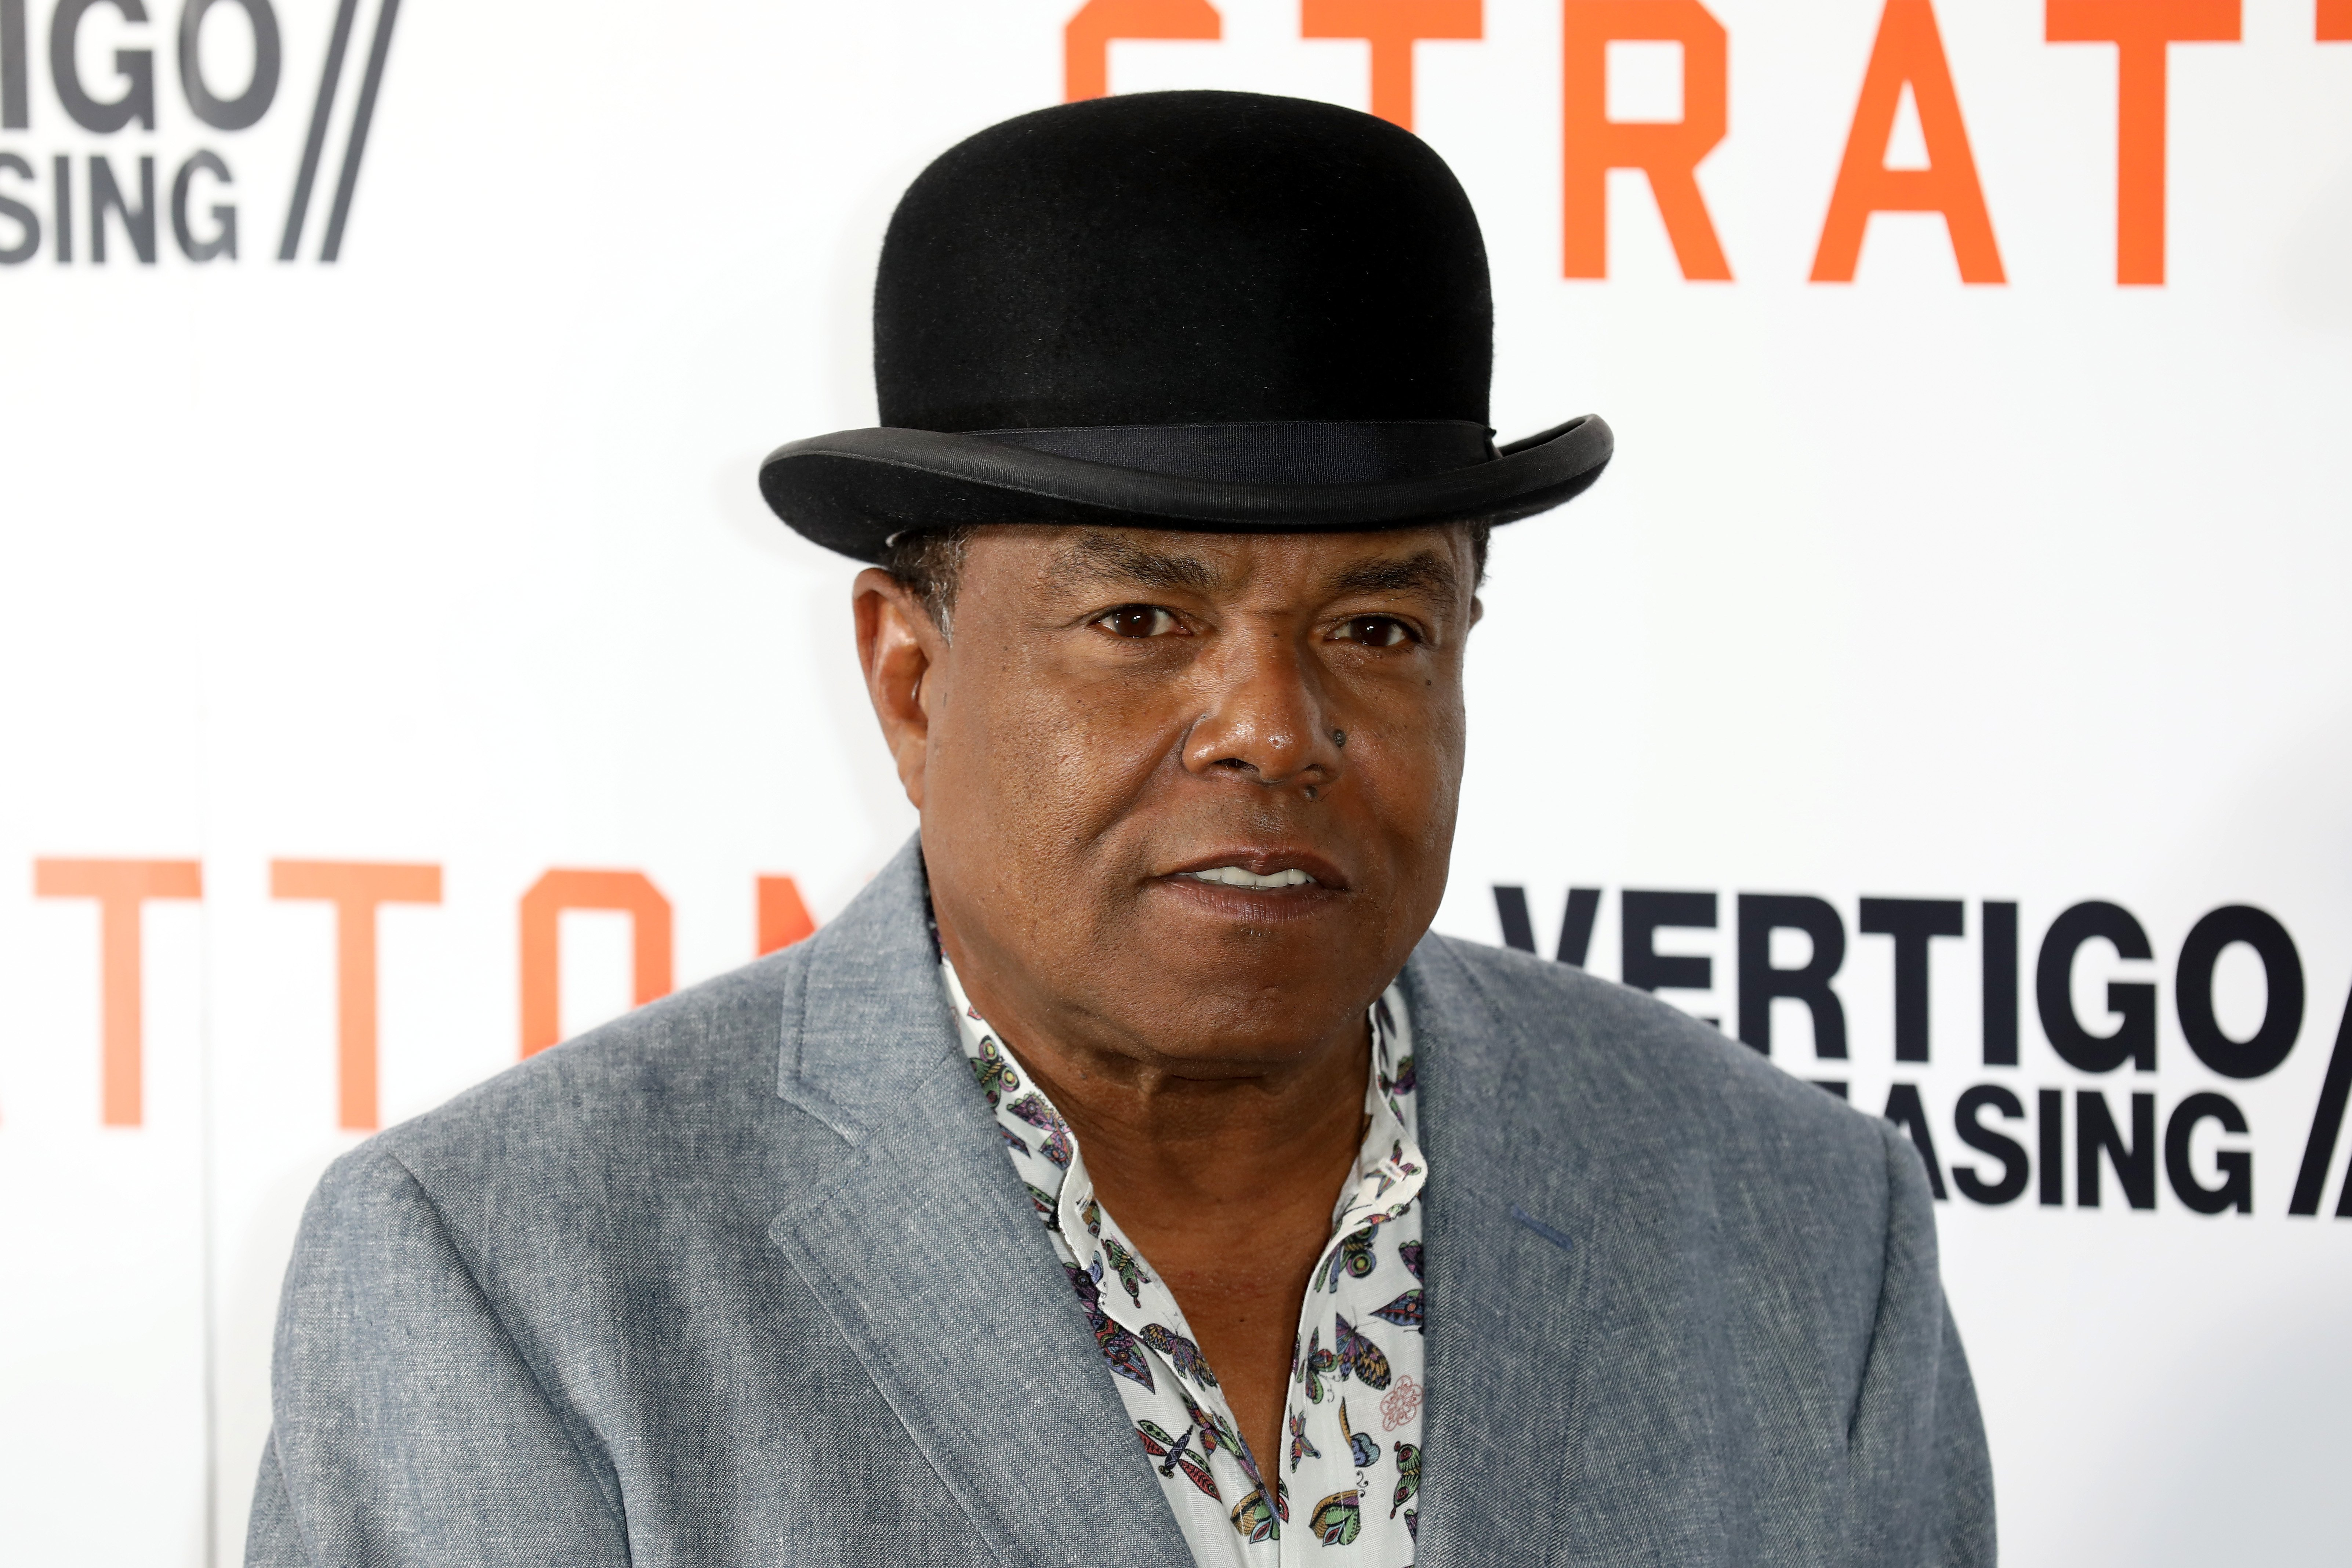 Tito Jackson attends the 'Stratton' UK premiere at the Vue West End on August 29, 2017, in London, England. | Source: Getty Images.